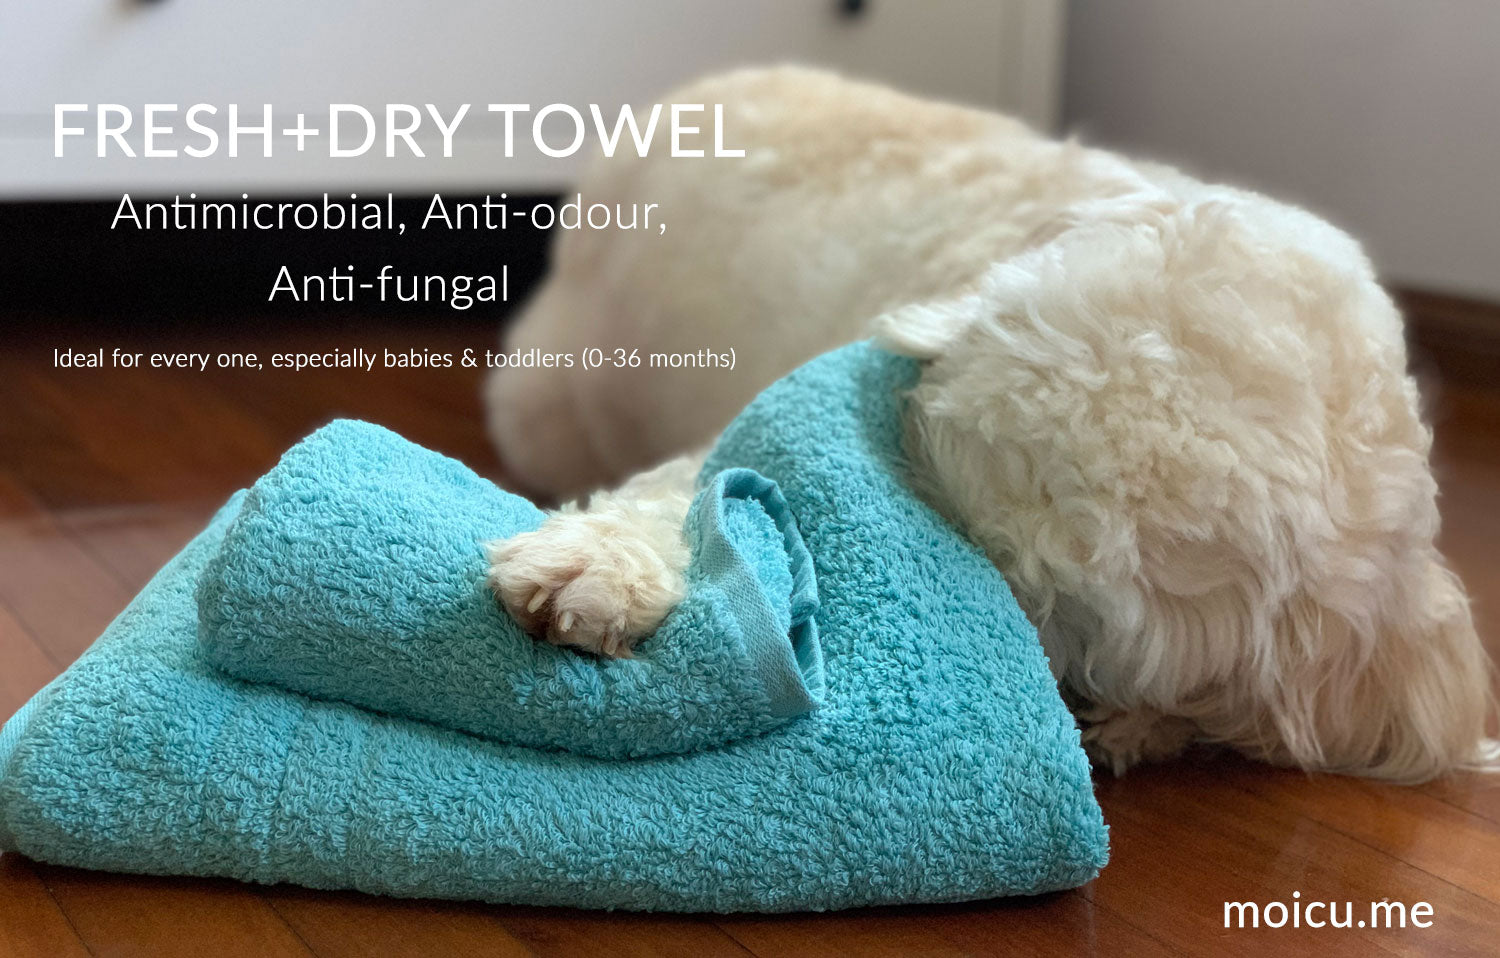 Best baby towel for your next baby shower gift for Singapore mothers